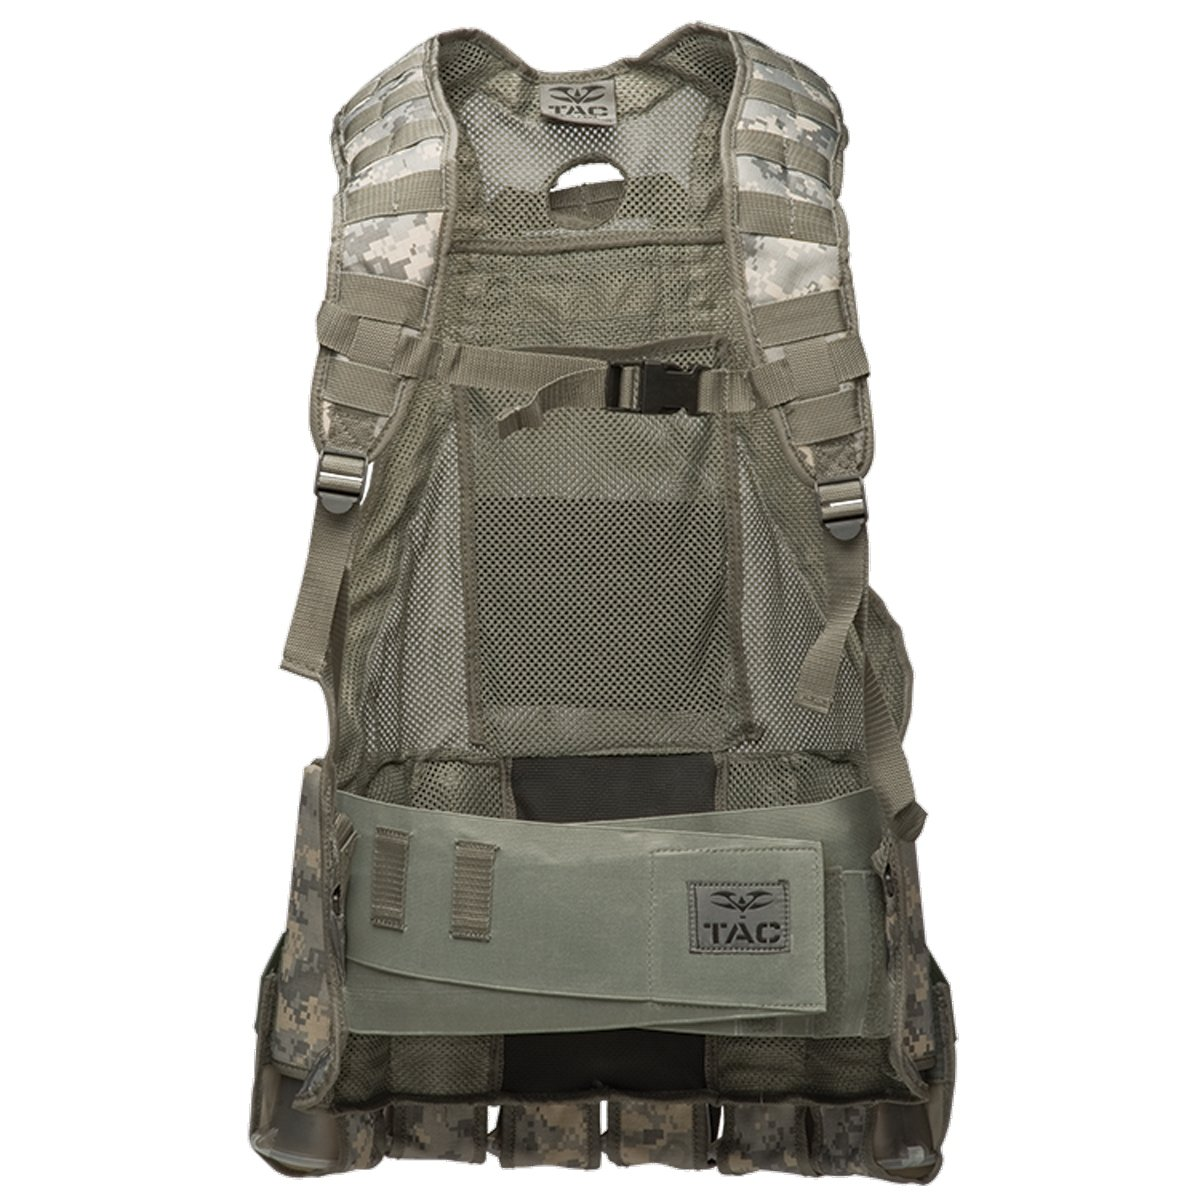 Valken V-Tac Echo Paintball Vest